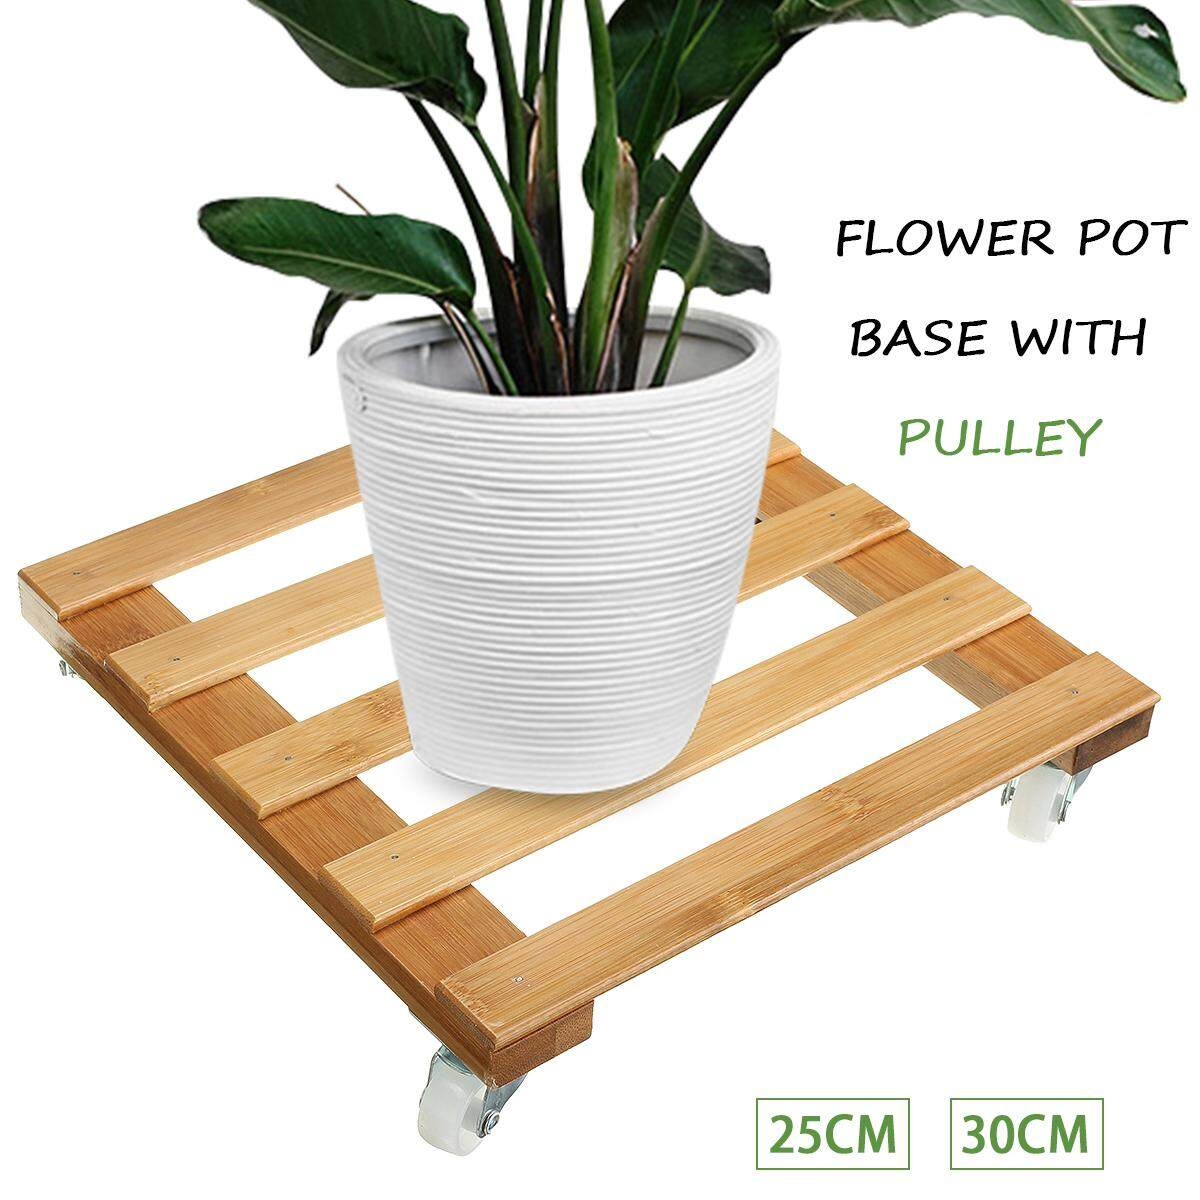 Mu Ma Ren 25cm Flower Plant Pot Base Roller Moving Tray Rack Garden Holder with Pulley Wheel Renting/Decoration